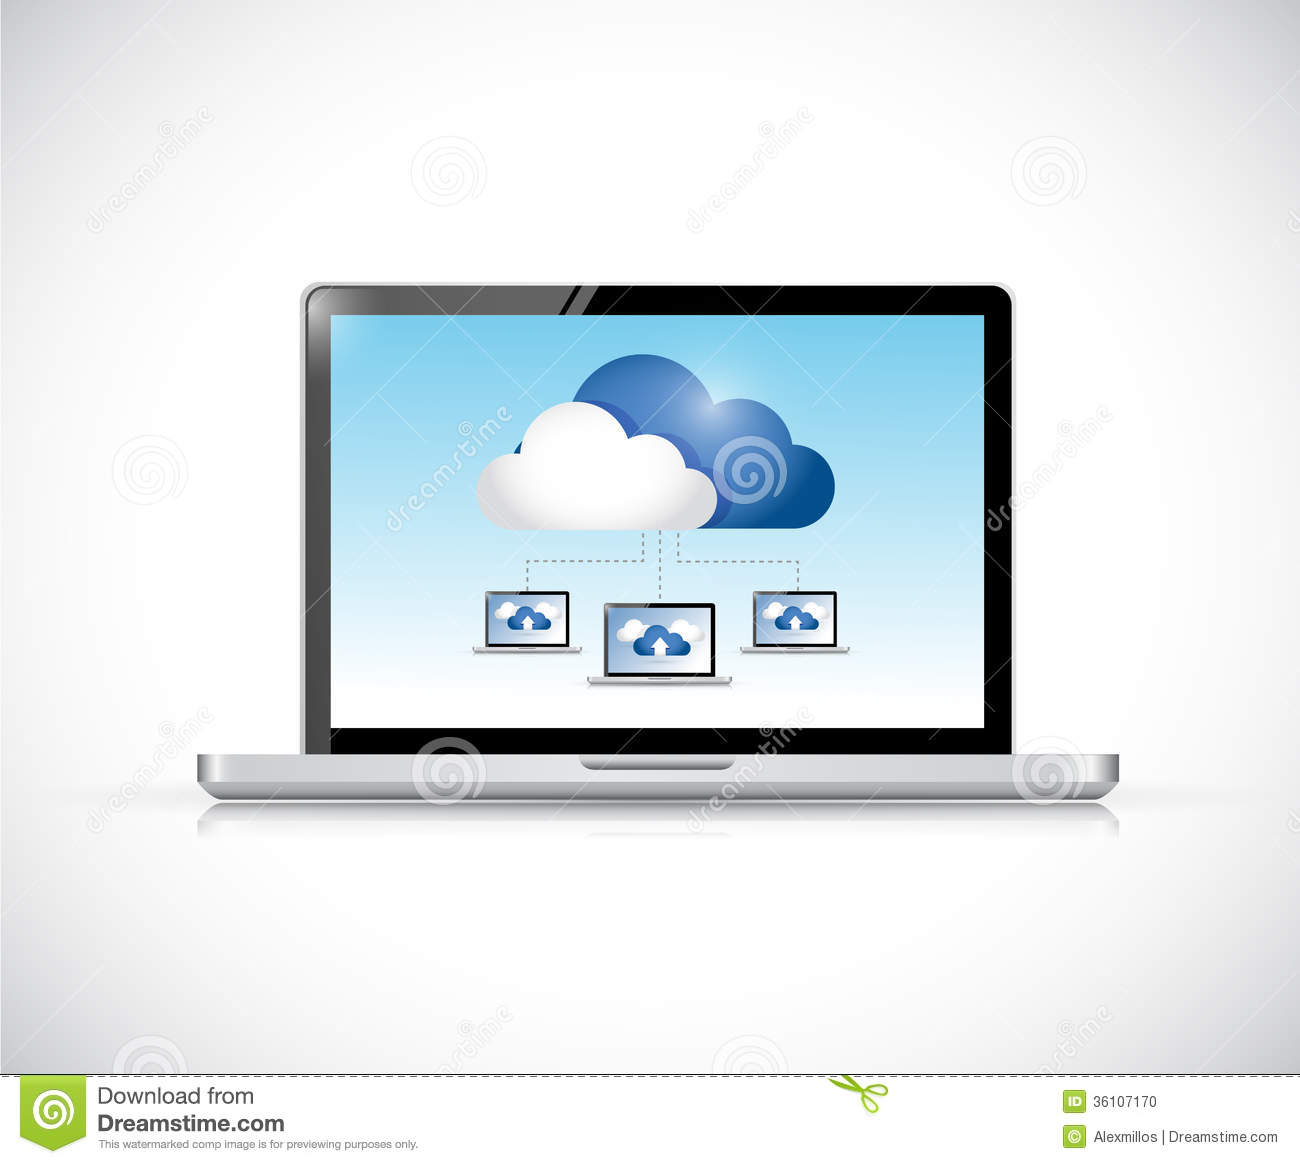 Networking Cloud Computing: Phone And Cloud Computing Computer Network. Royalty-Free